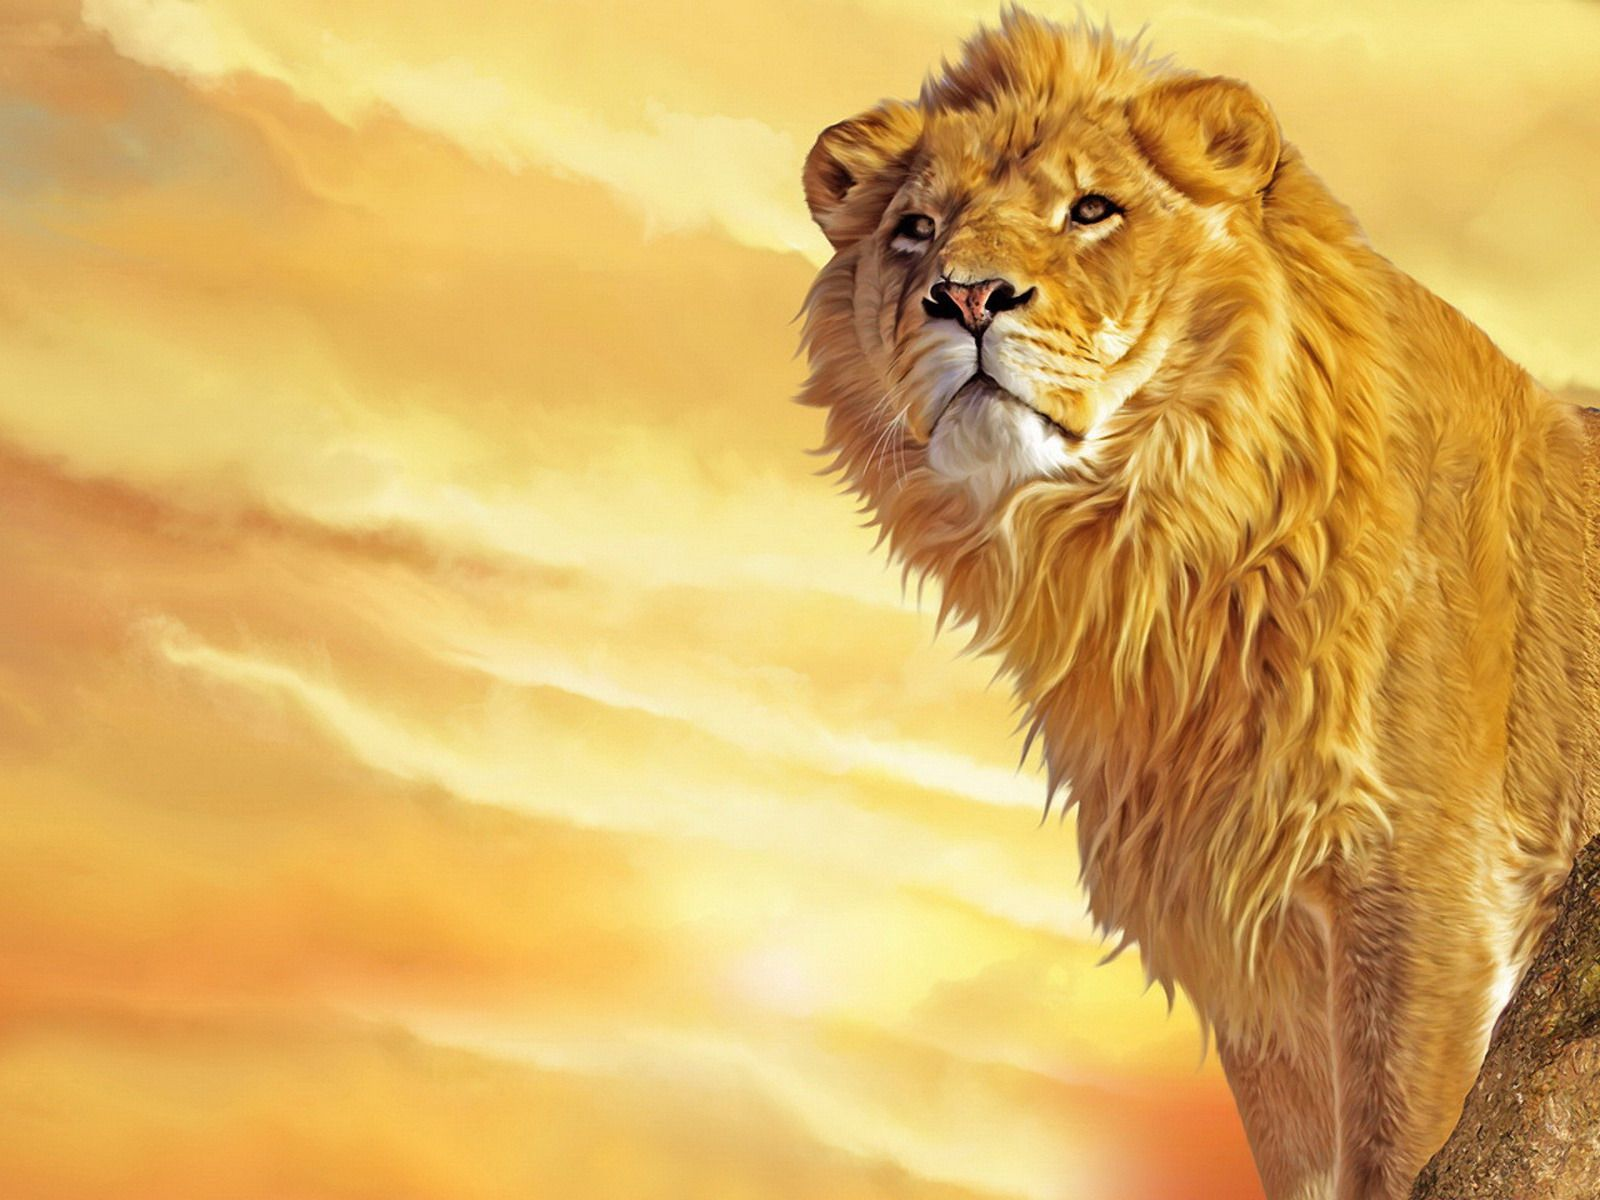 Painting Download Cartoon Lions Wallpaper Lion Painting